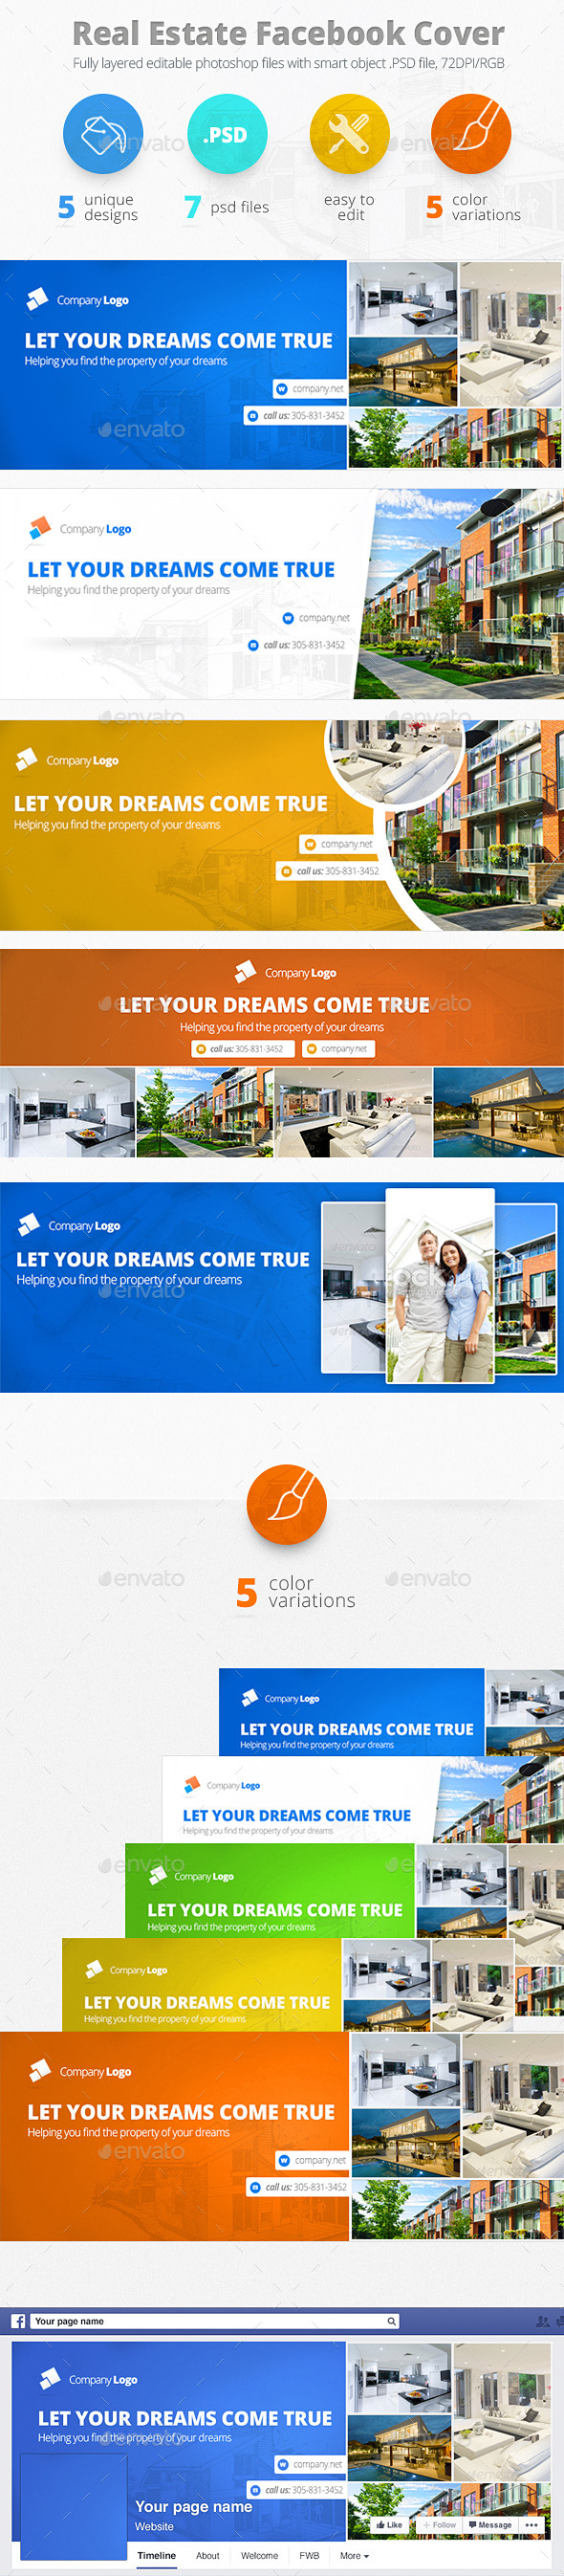 GraphicRiver Real Estate Facebook Cover 9445106